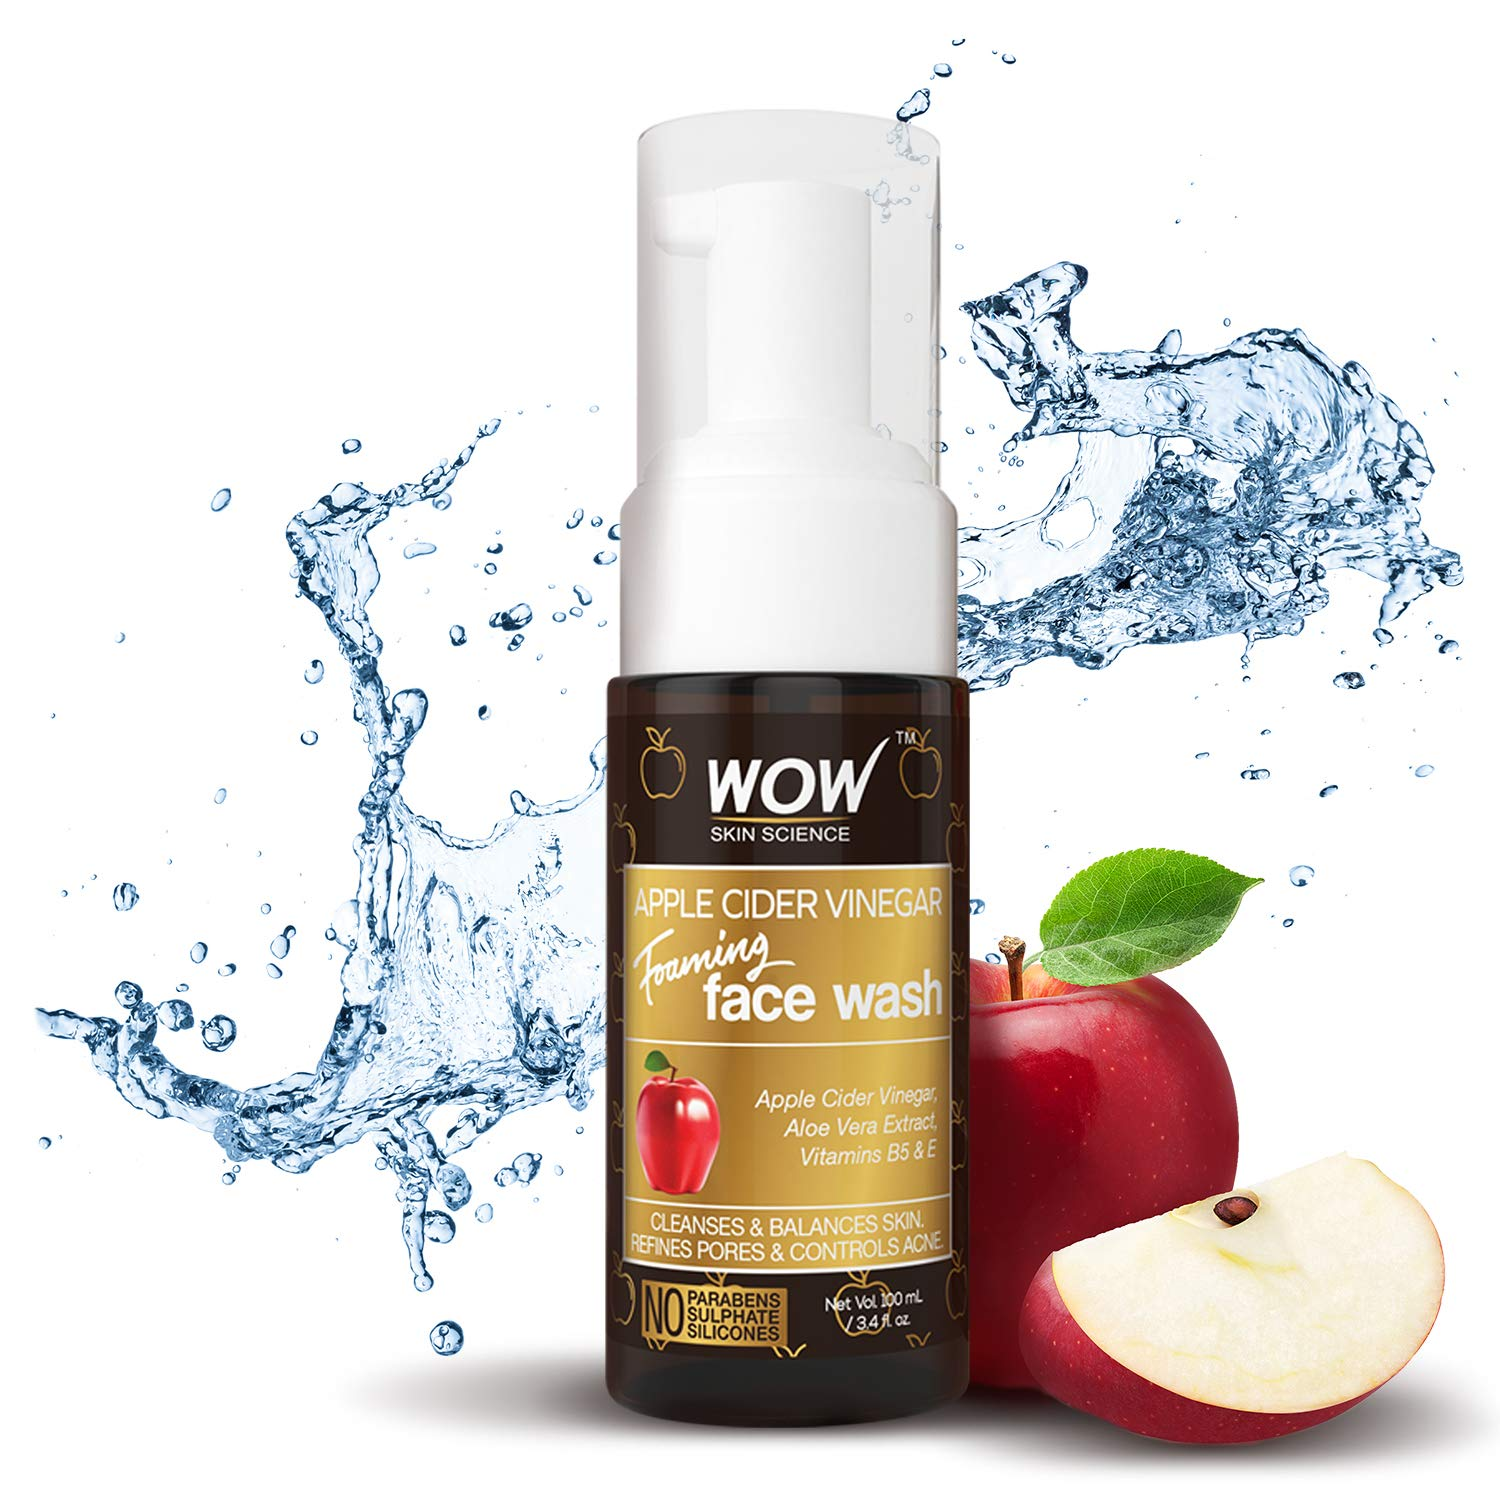 WOW Apple Cider Vinegar Foaming Face Wash Cleanser - Normal, Dry & Oily Skin - Heal, Hydrate For Soft, Clear Skin - Remove Dirt, Oil & Makeup, Reduce Acne Breakouts - Men & Women - All Ages - 100 mL by BUYWOW (Image #5)